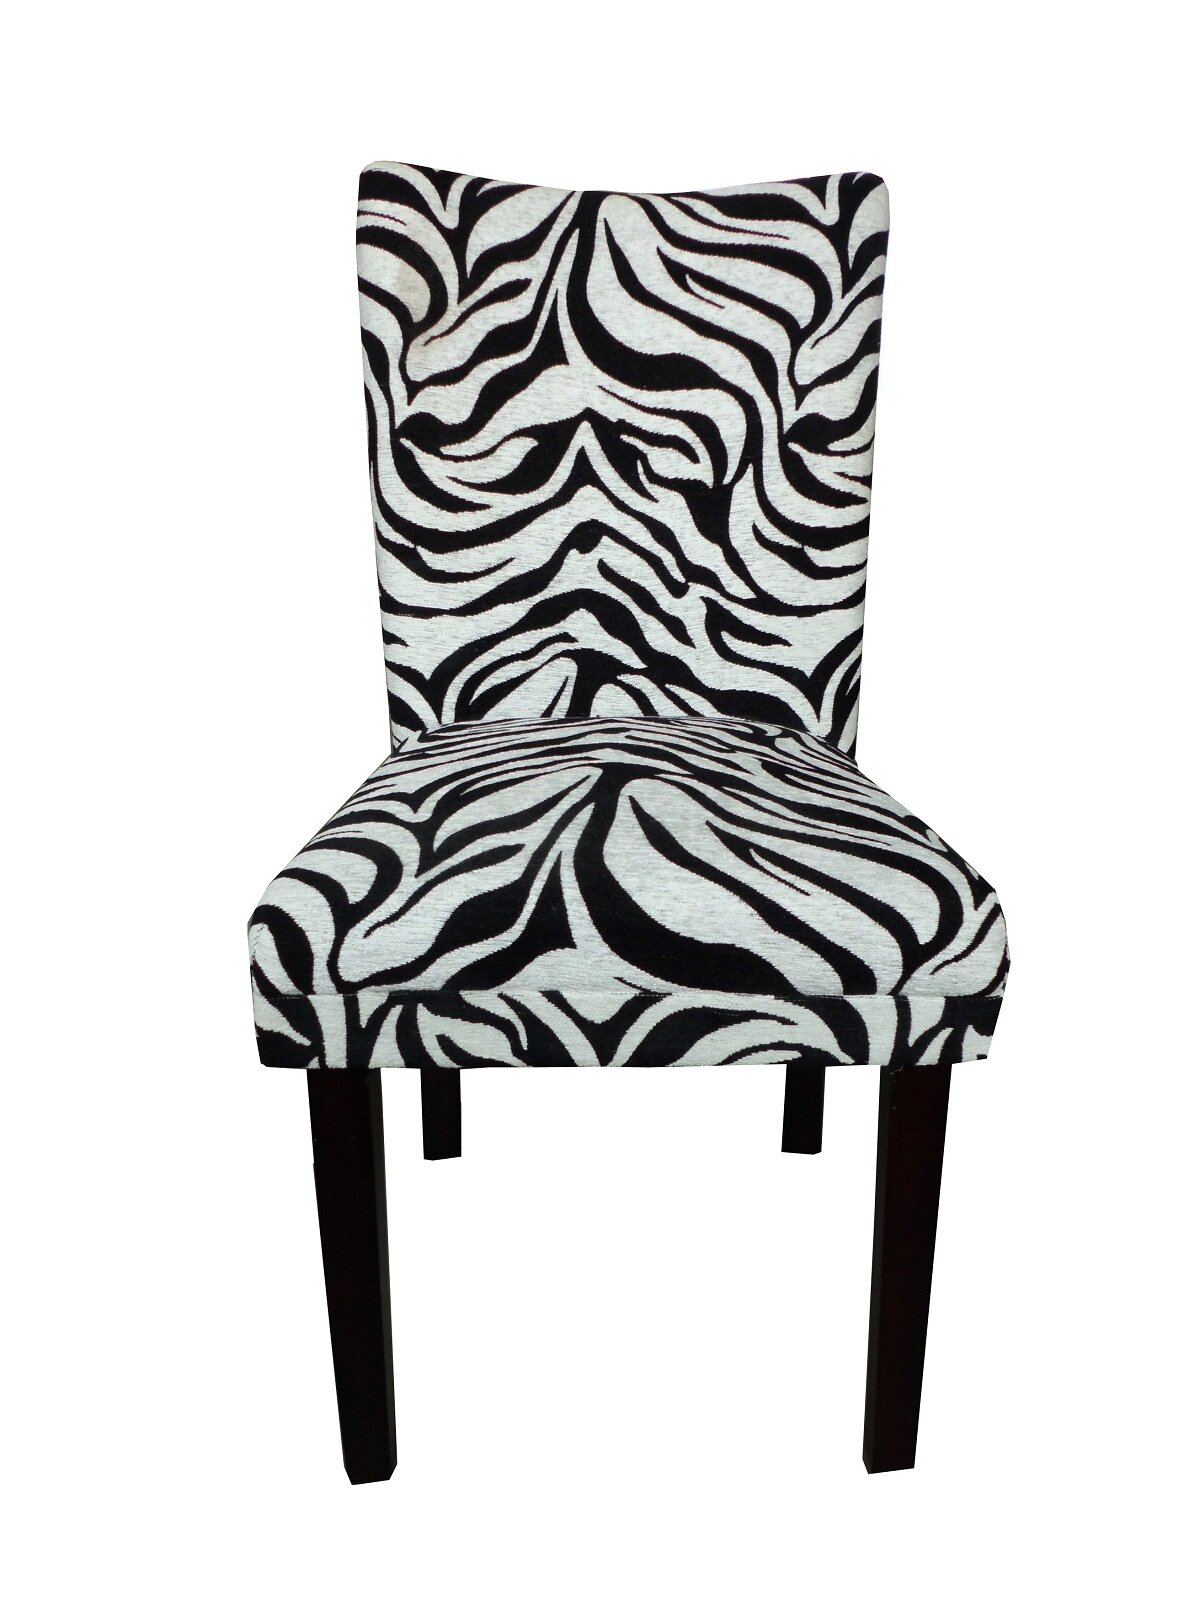 NOYA USA Tiger Striped Upholstered Dining Chair | Wayfair